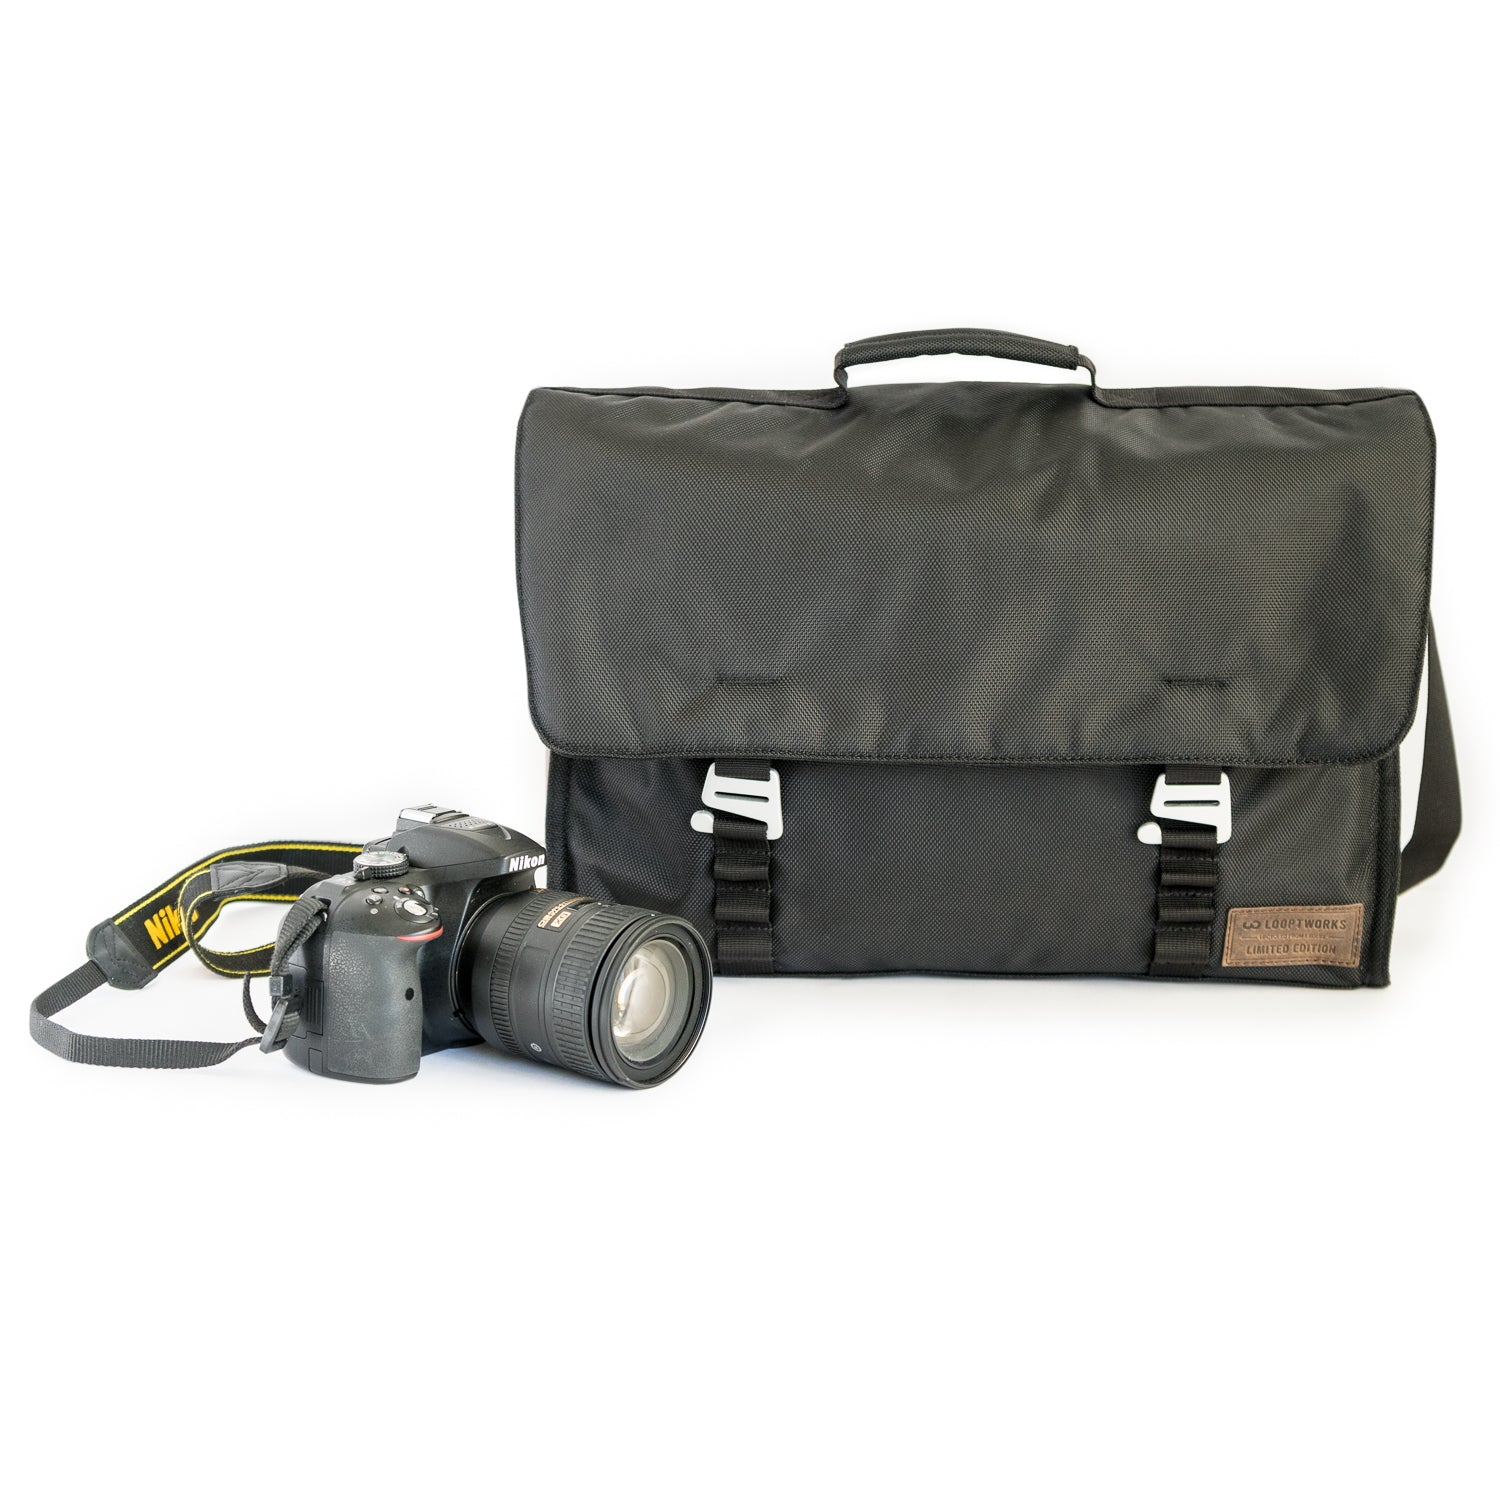 Northwest Camera Messenger Bag